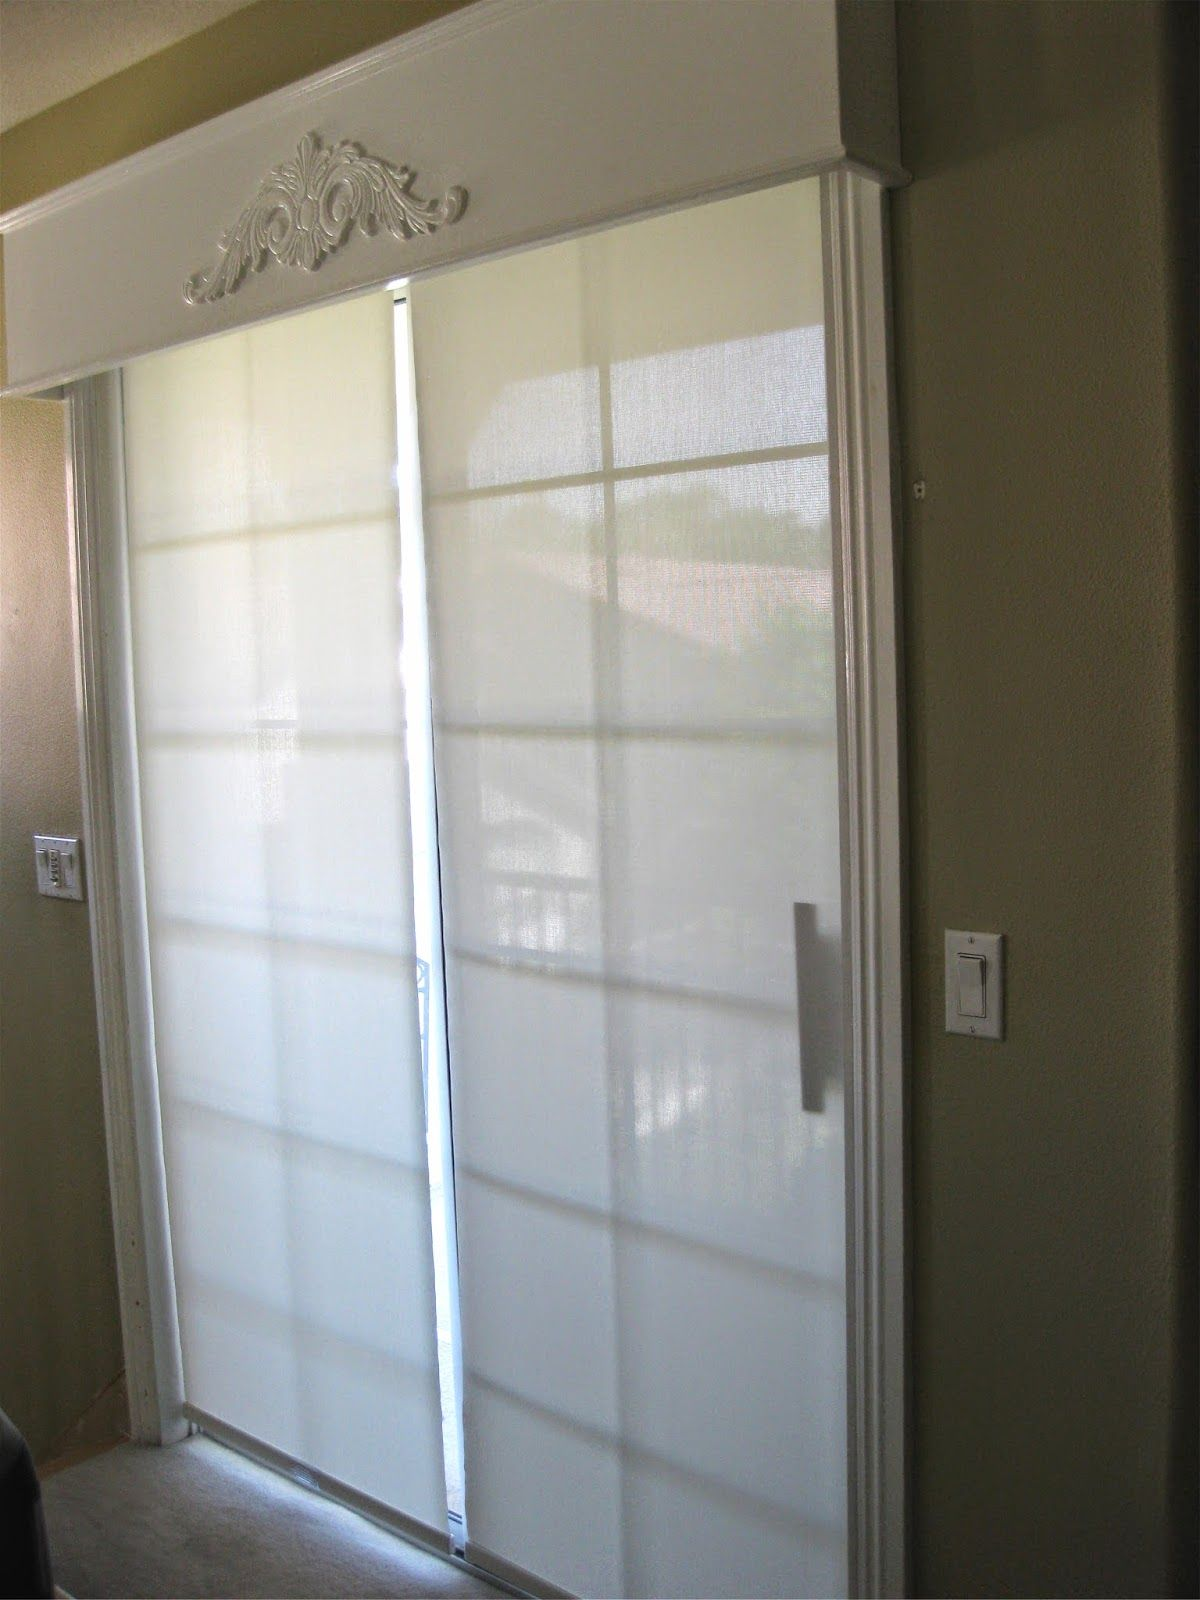 Sliding Glass Door Hunter Douglas Shades And Wood Cornice Box - Hunter douglas blinds for patio doors